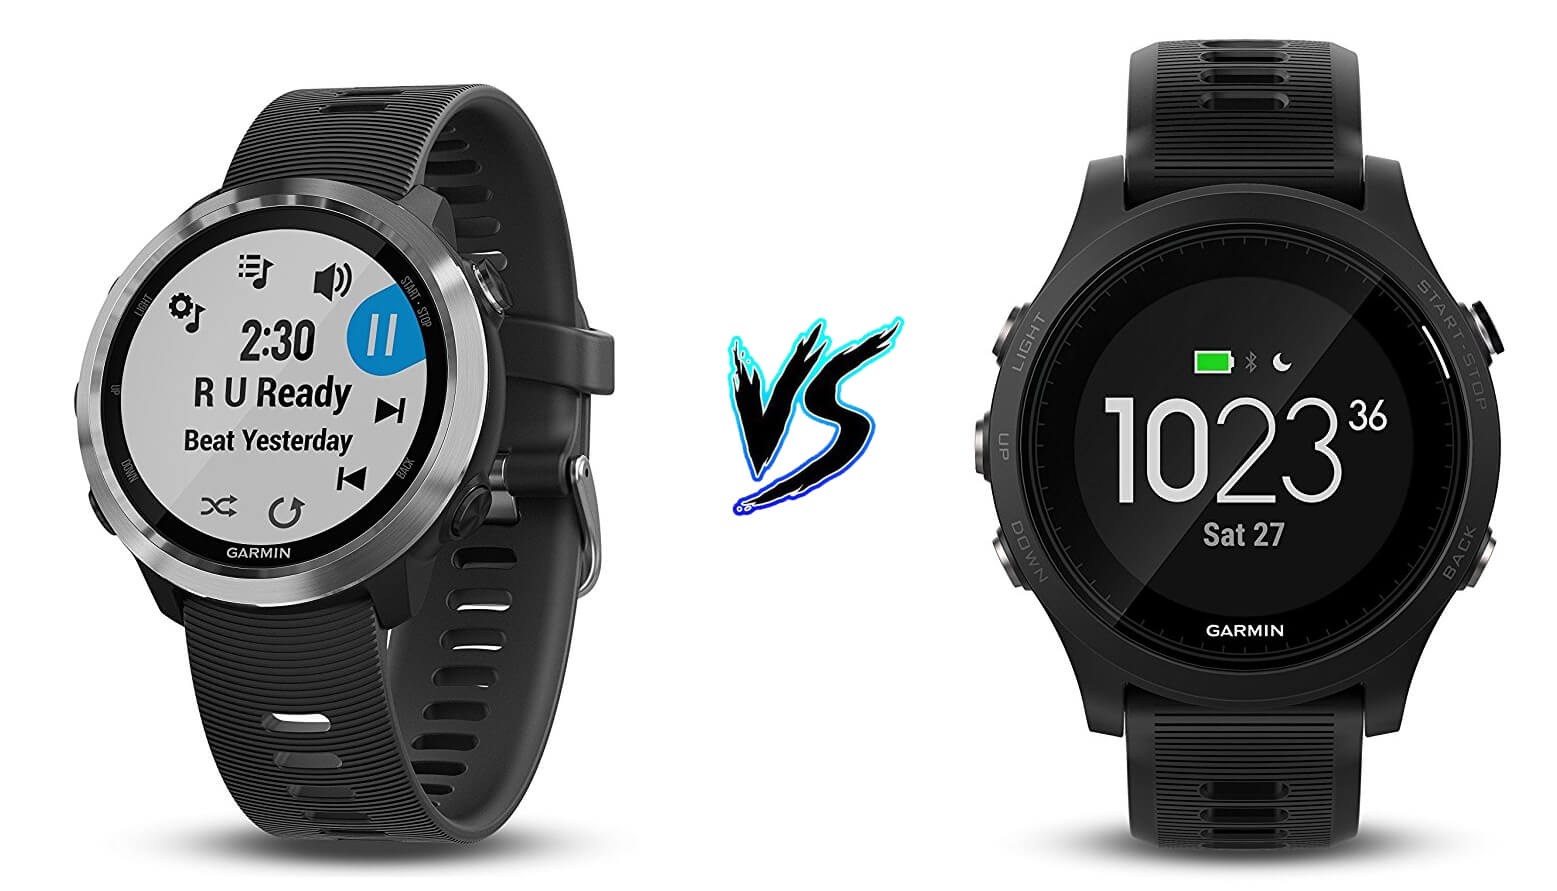 Garmin Forerunner 645 vs Garmin Forerunner 935 – Which One Is Better